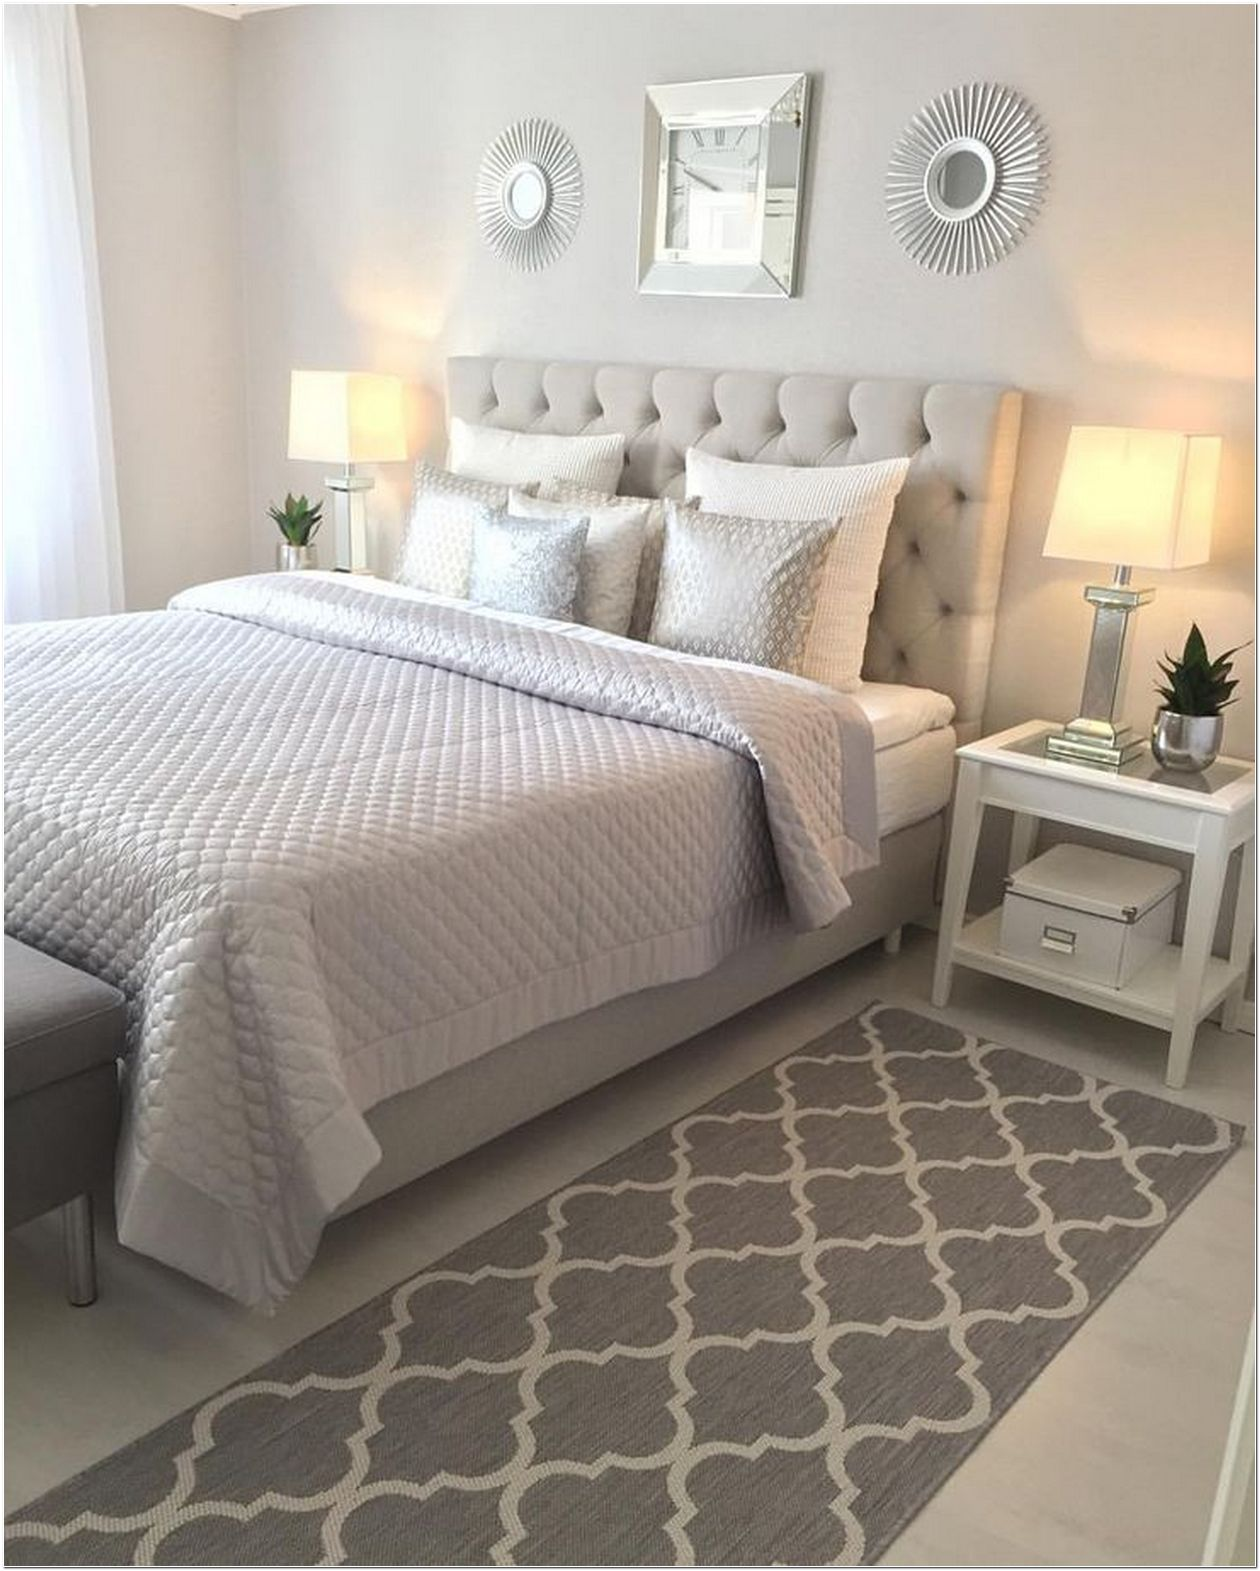 Home Design Ideas Classy: 85+ Classy & Elegant Traditional Bedroom Designs That Will